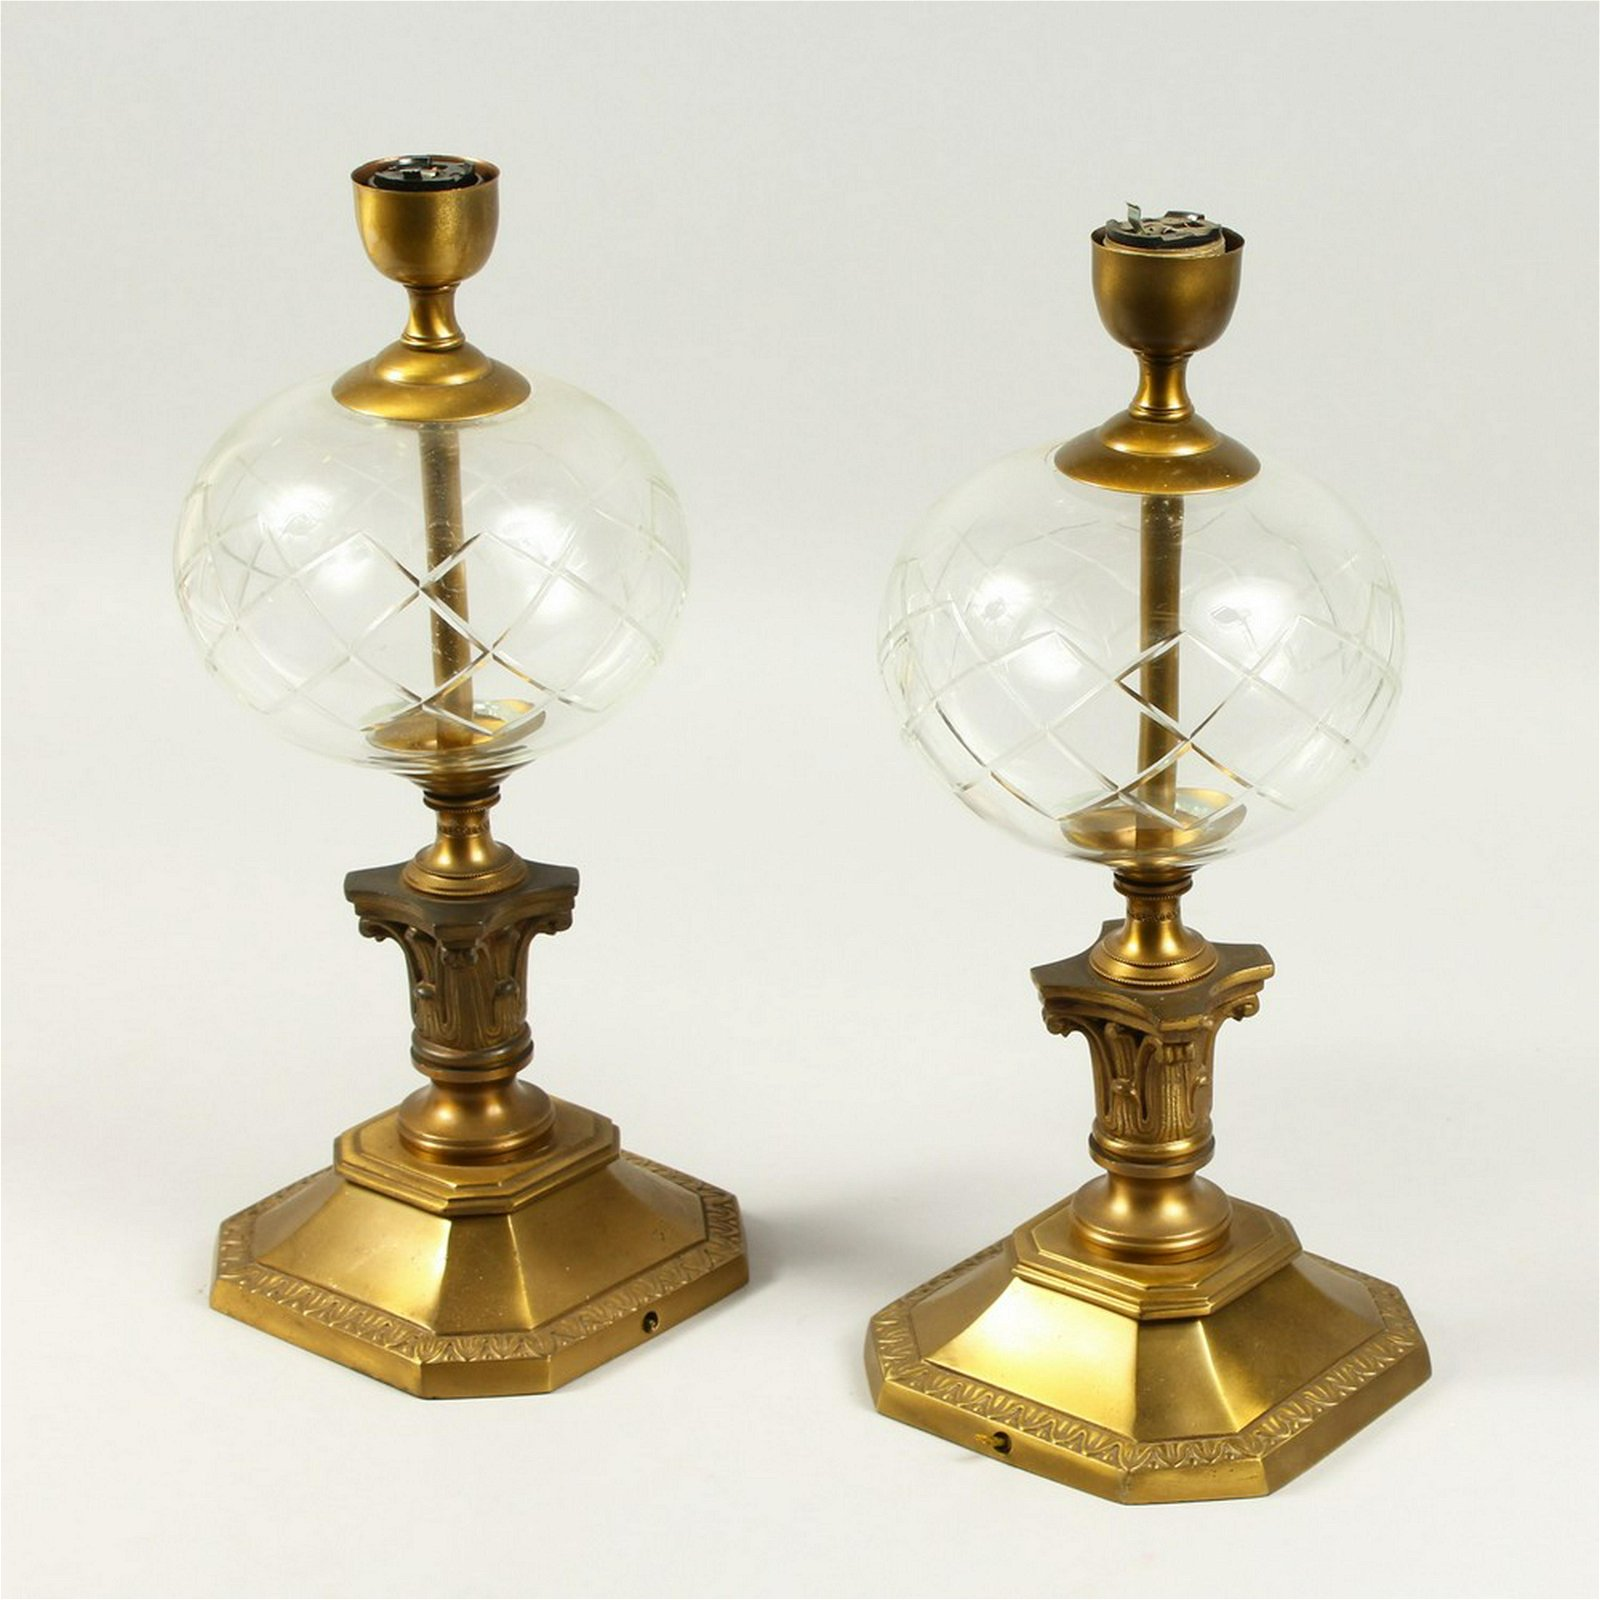 A PAIR OF 20TH CENTURY BRASS AND GLASS TABLE LAMPS,